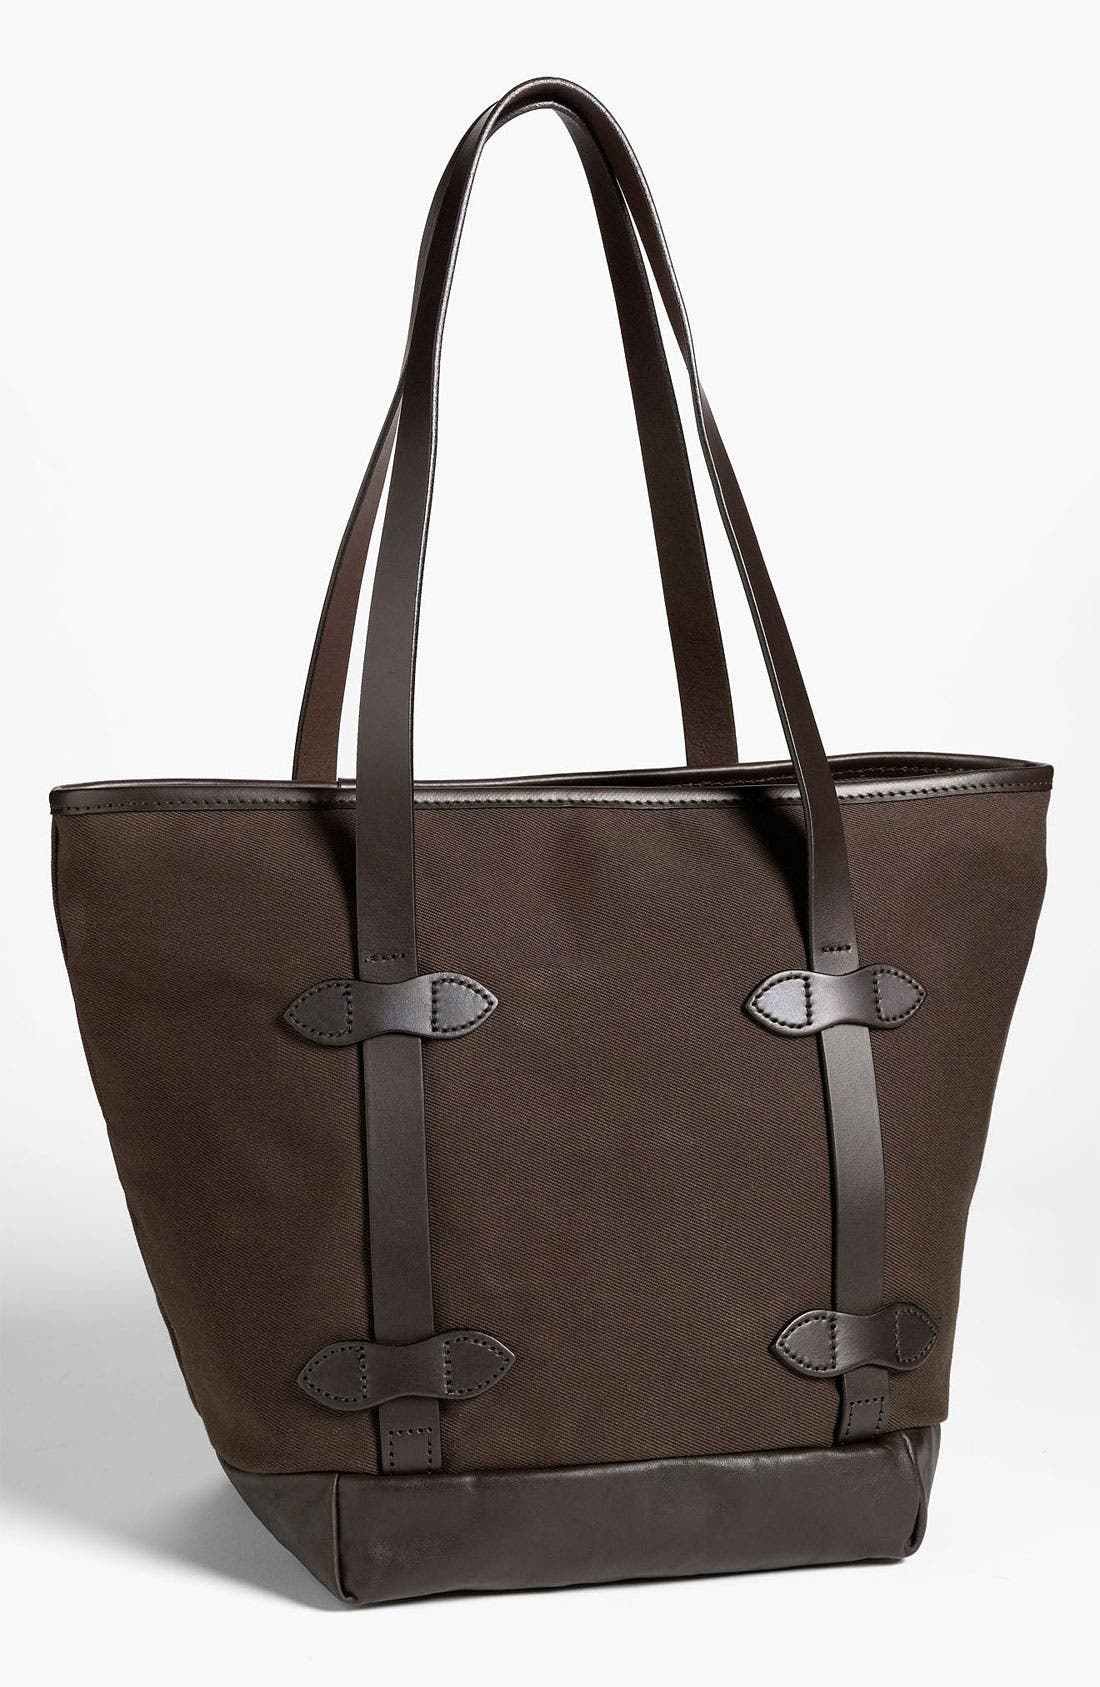 Alternate Image 1 Selected - Filson Twill Tote Bag